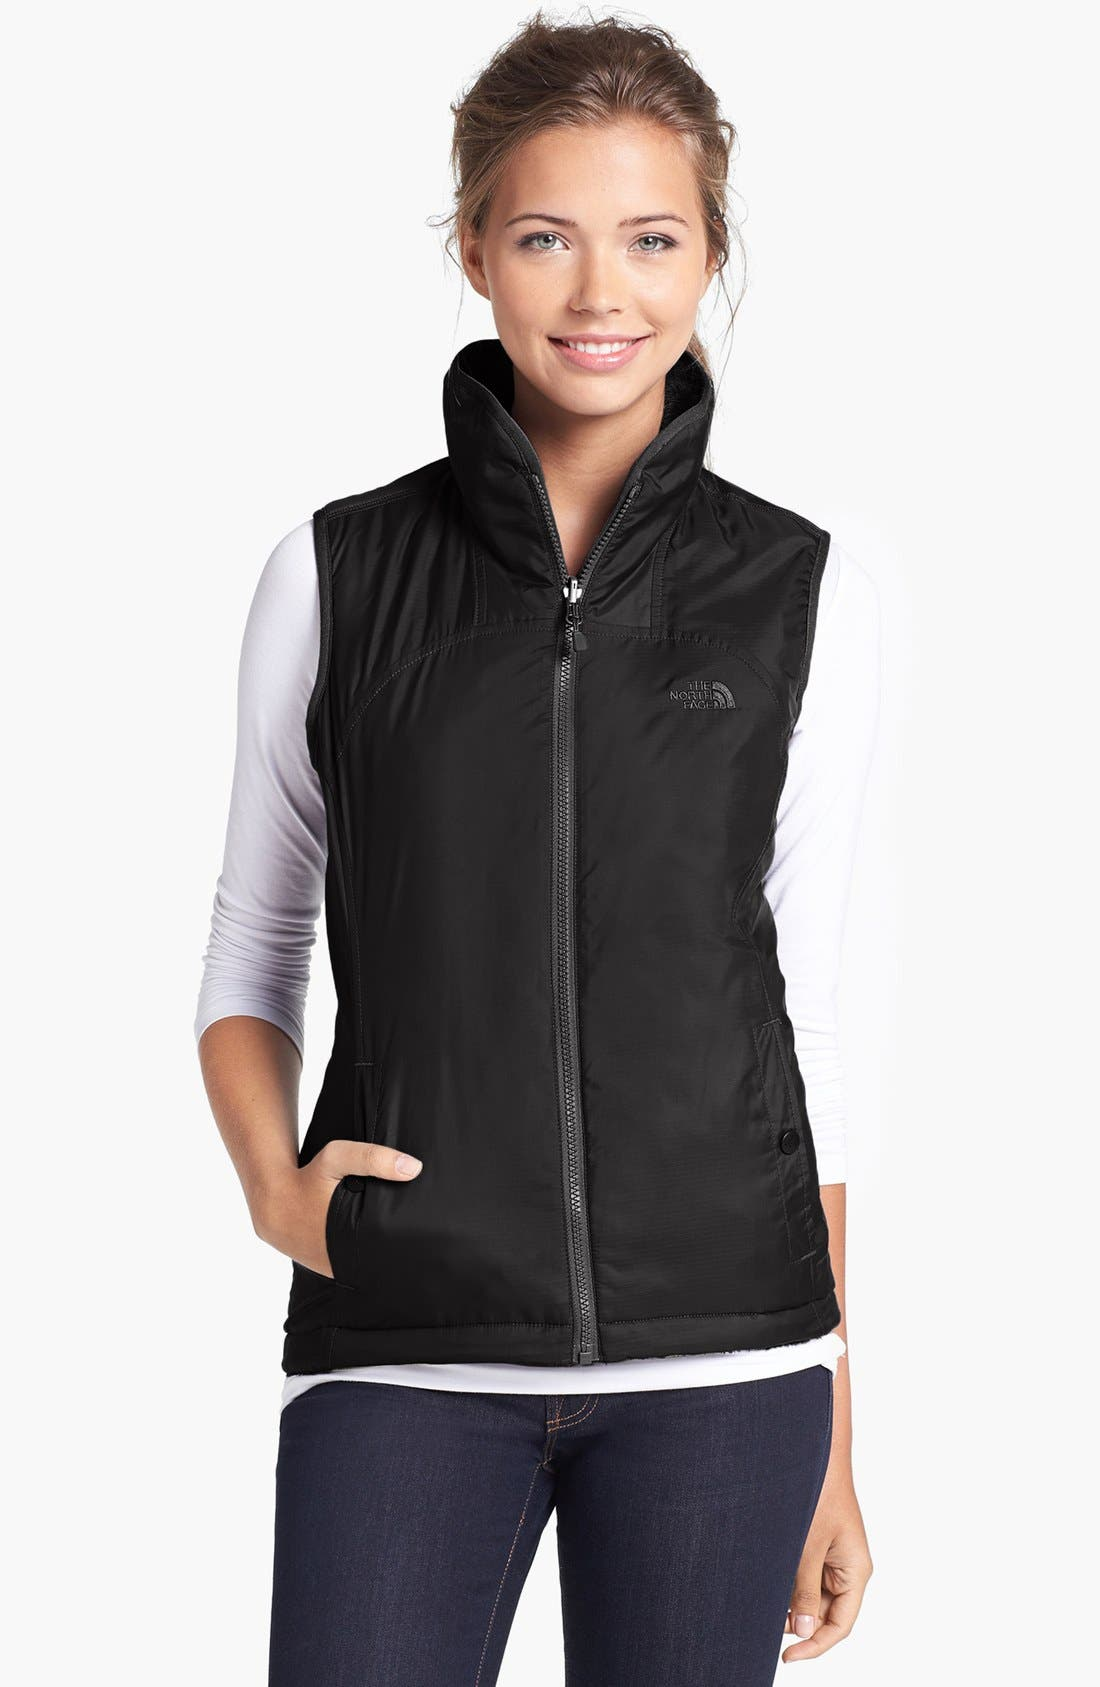 Main Image - The North Face 'Mossbud' Insulated Reversible Vest